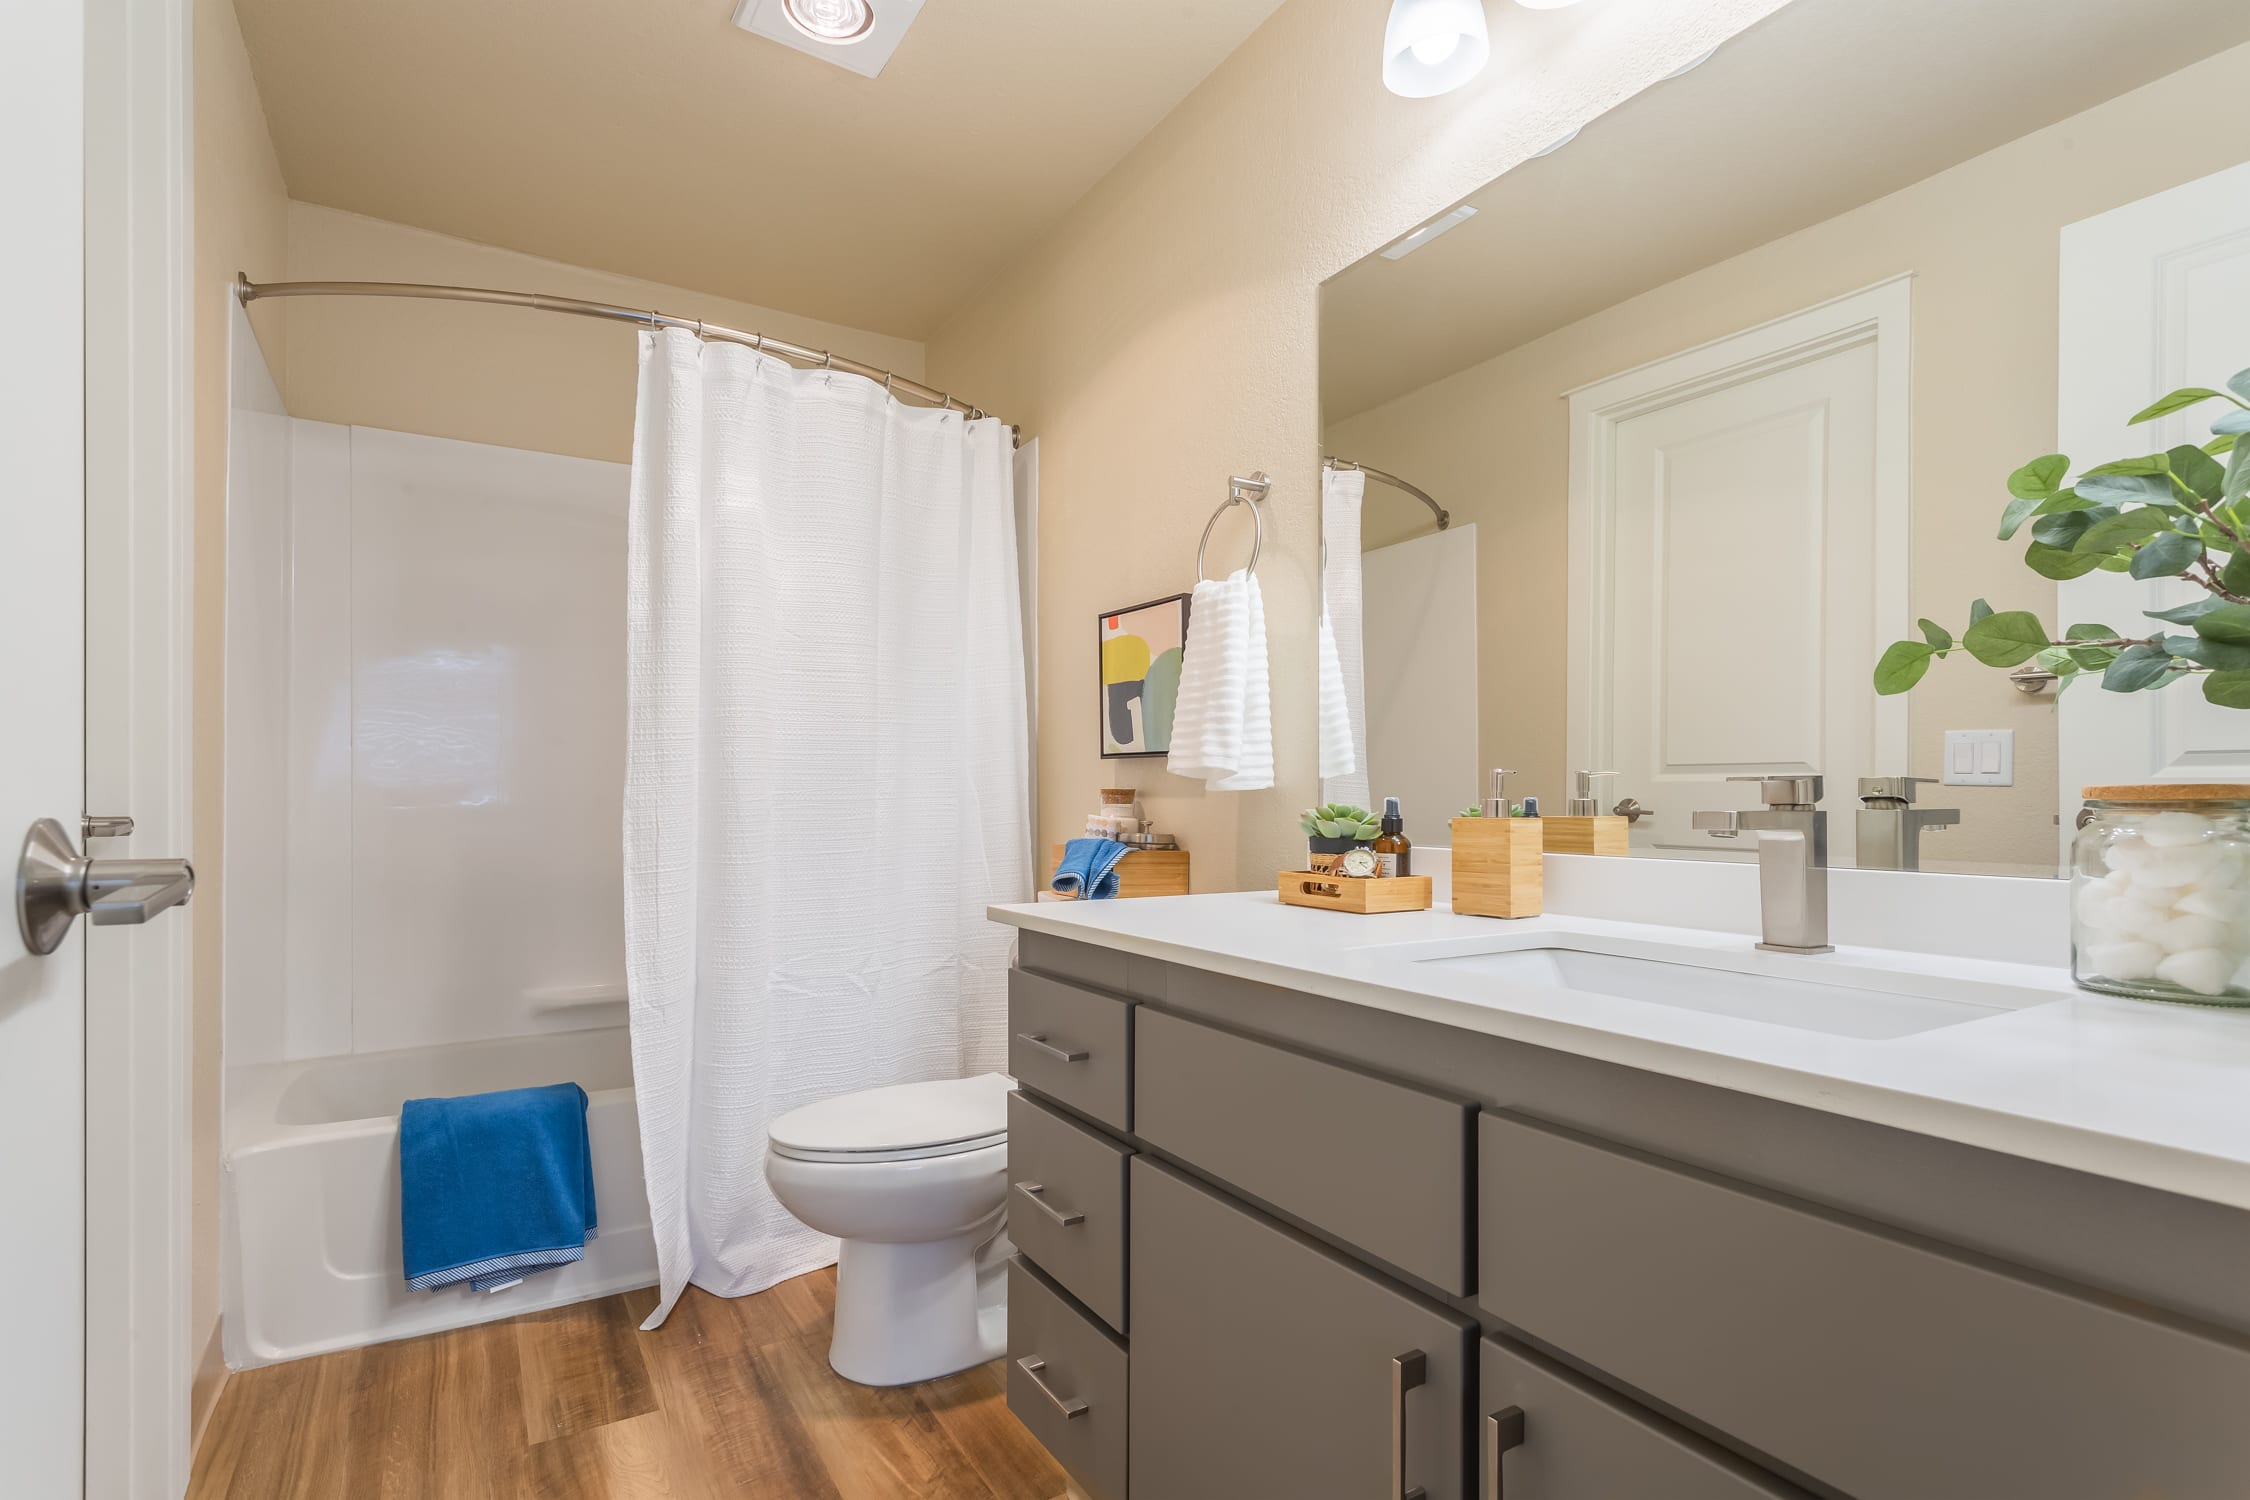 Haller Post Apartments Bathroom features a clean, modern look.